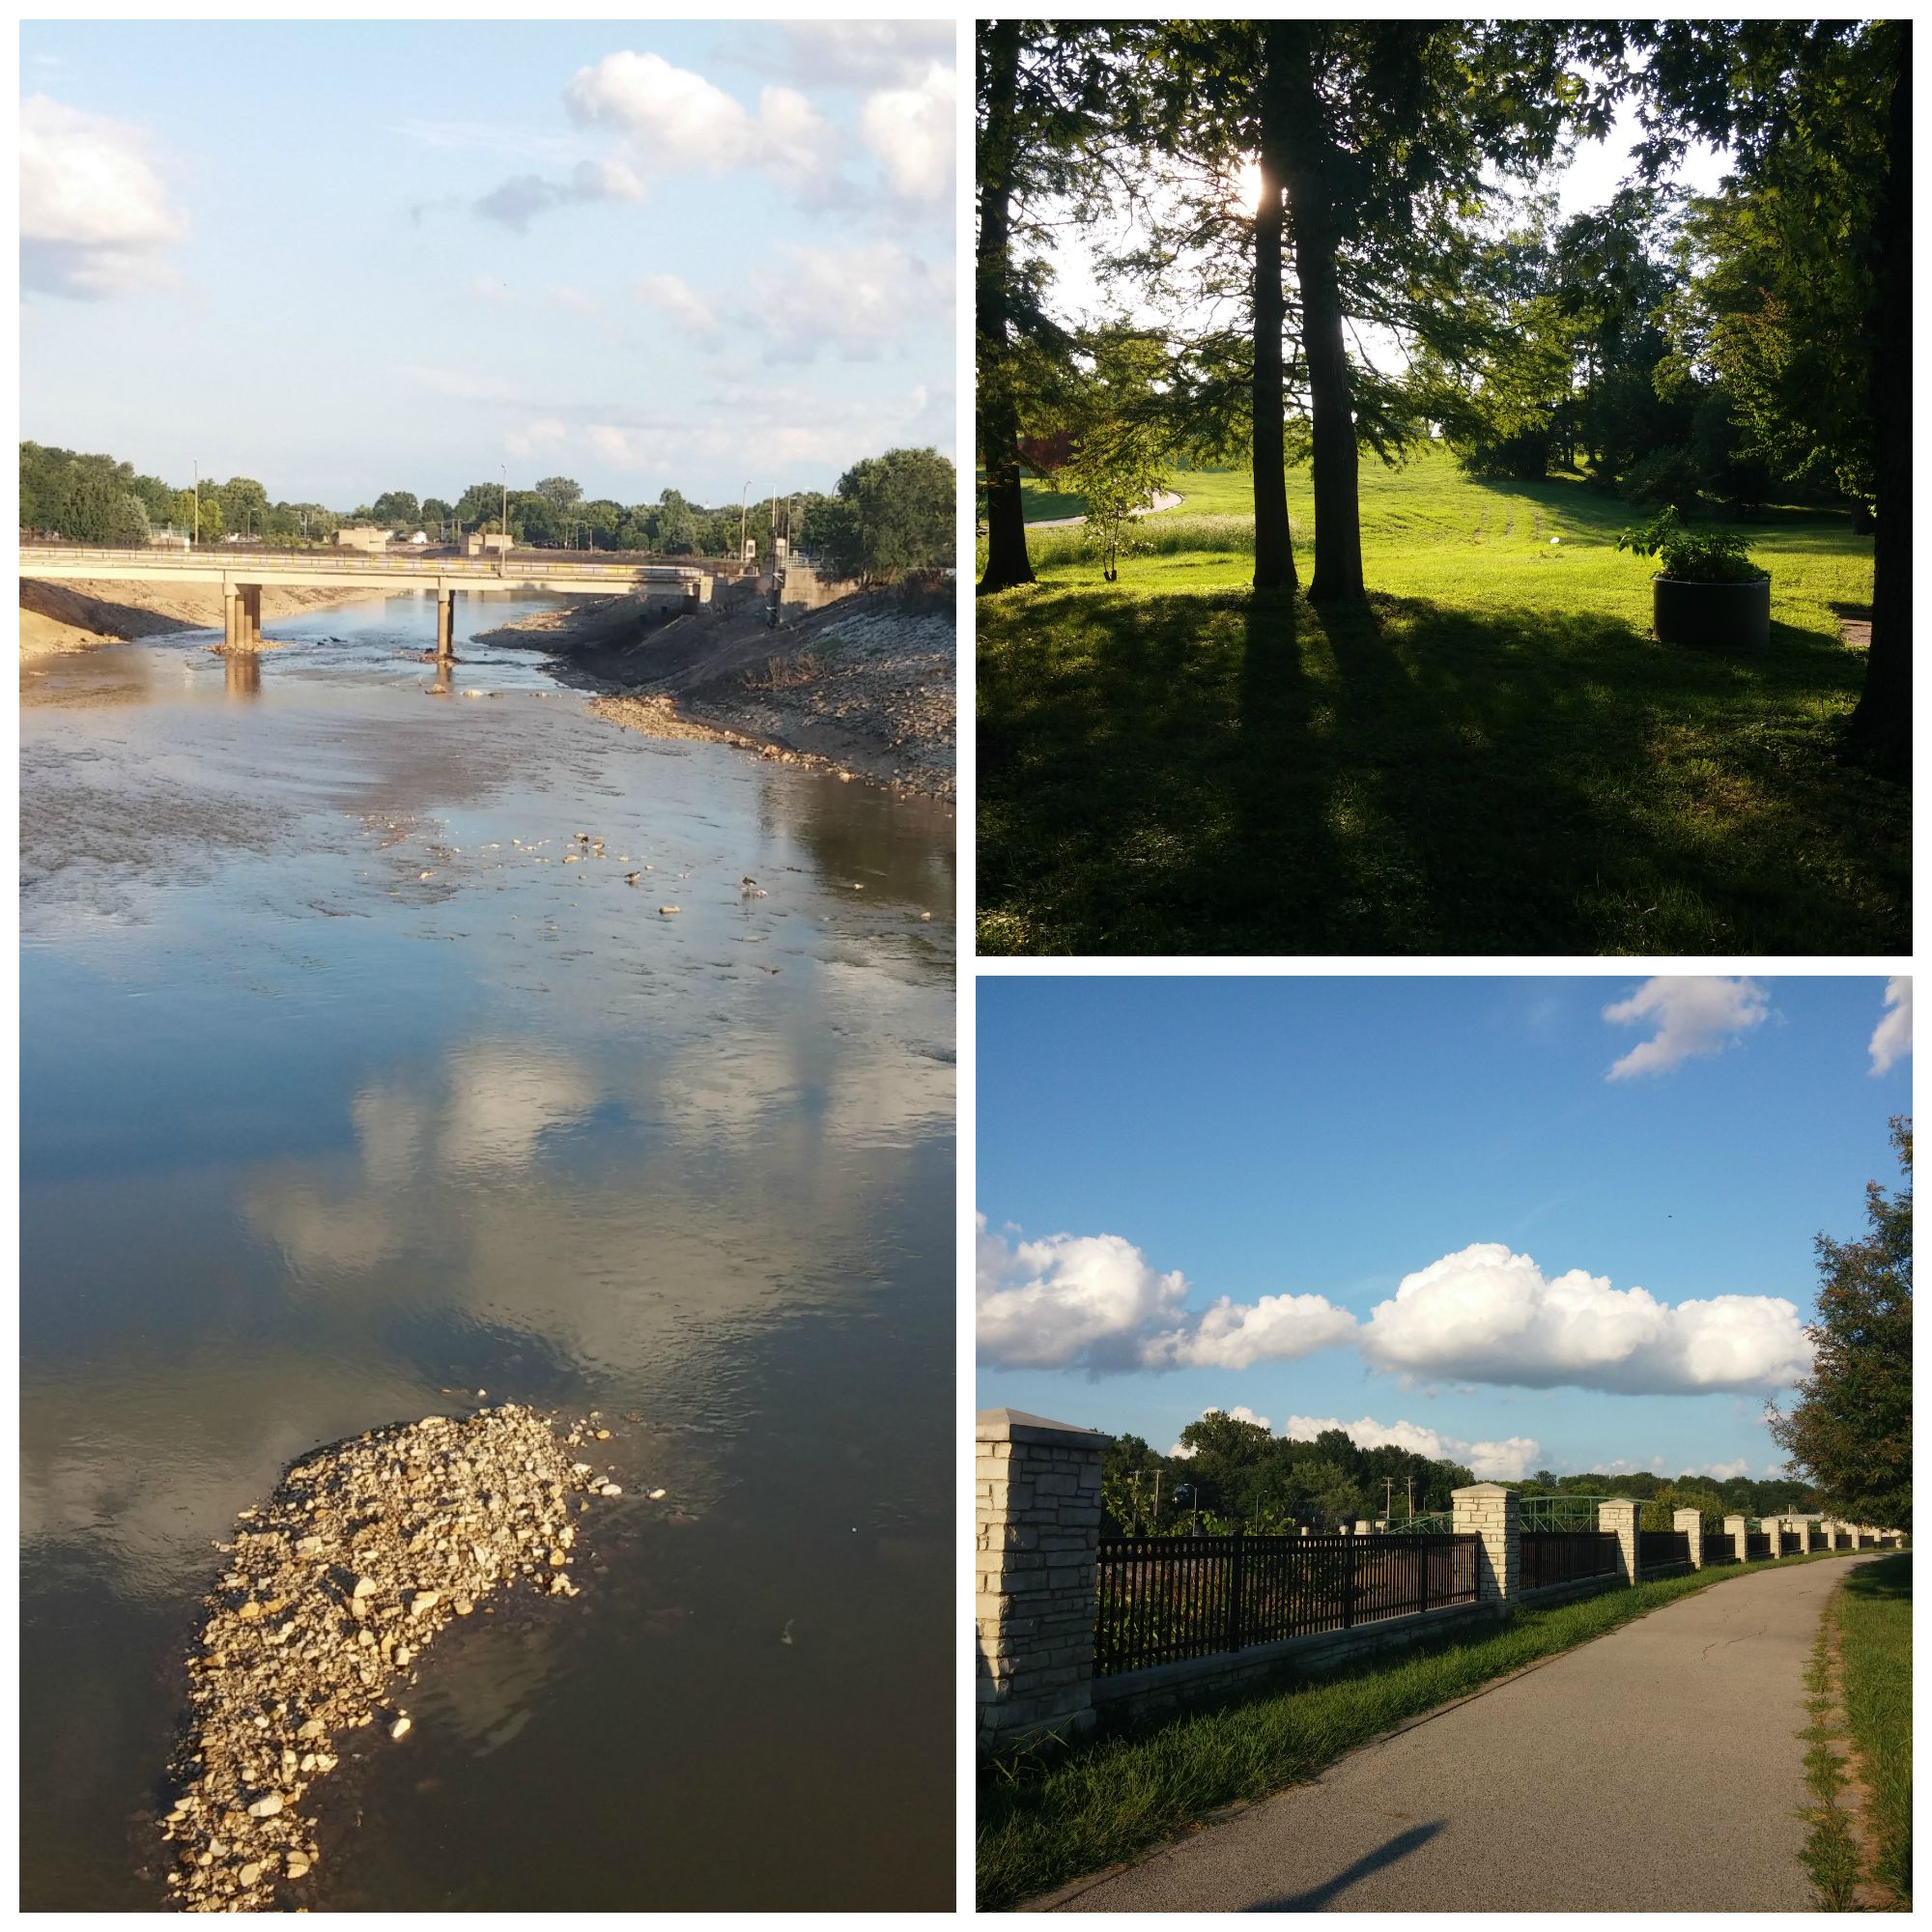 """Pictures from my afternoon walk: Looking south over River des Peres, trees at the base of """"cemetery hill,"""" and the trail (with fluffy clouds)on the west side of River des Peres."""